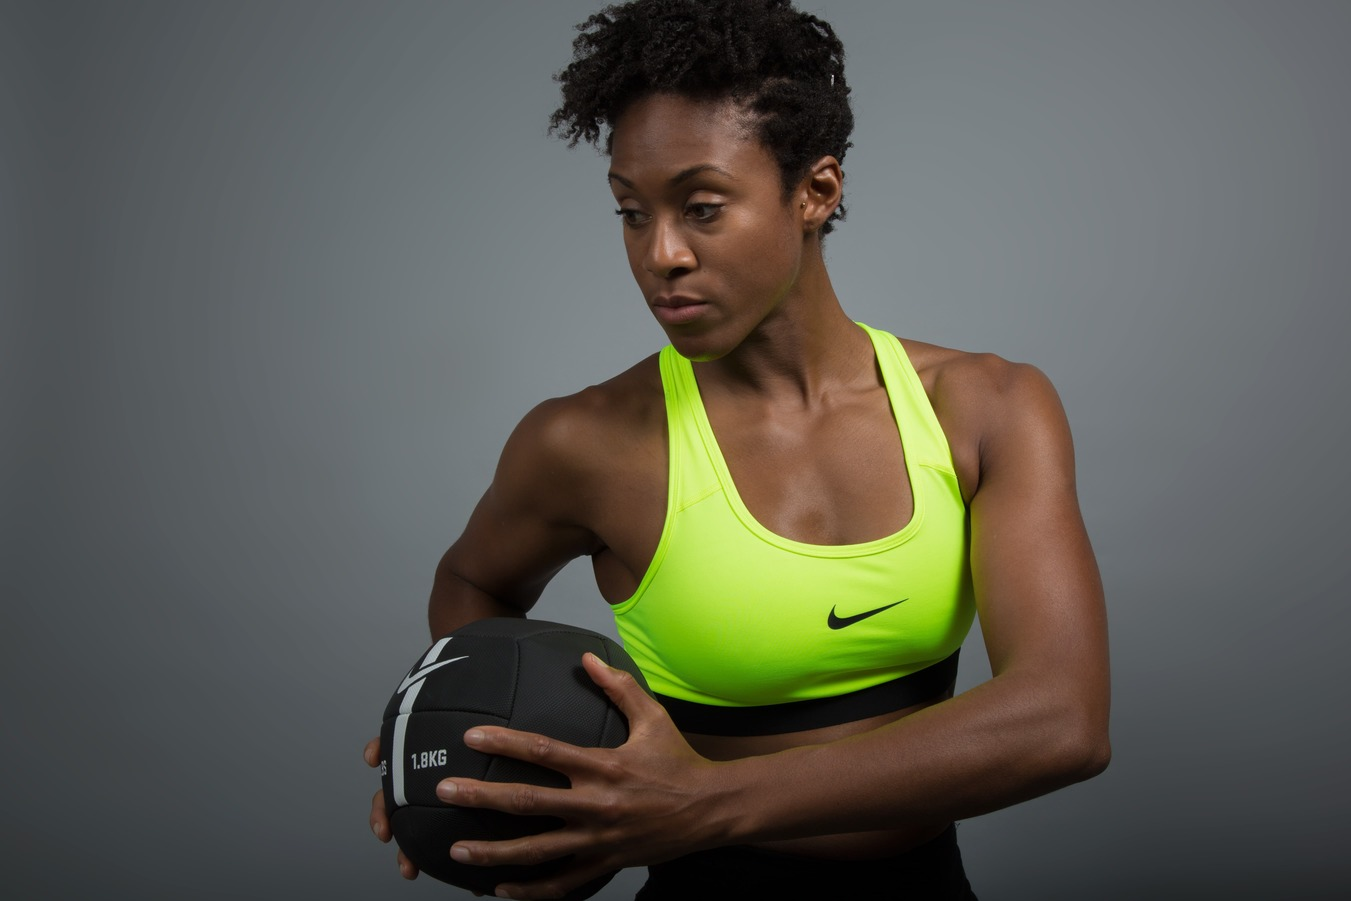 Why Tameka Small wears the Nike Pro Classic Bra